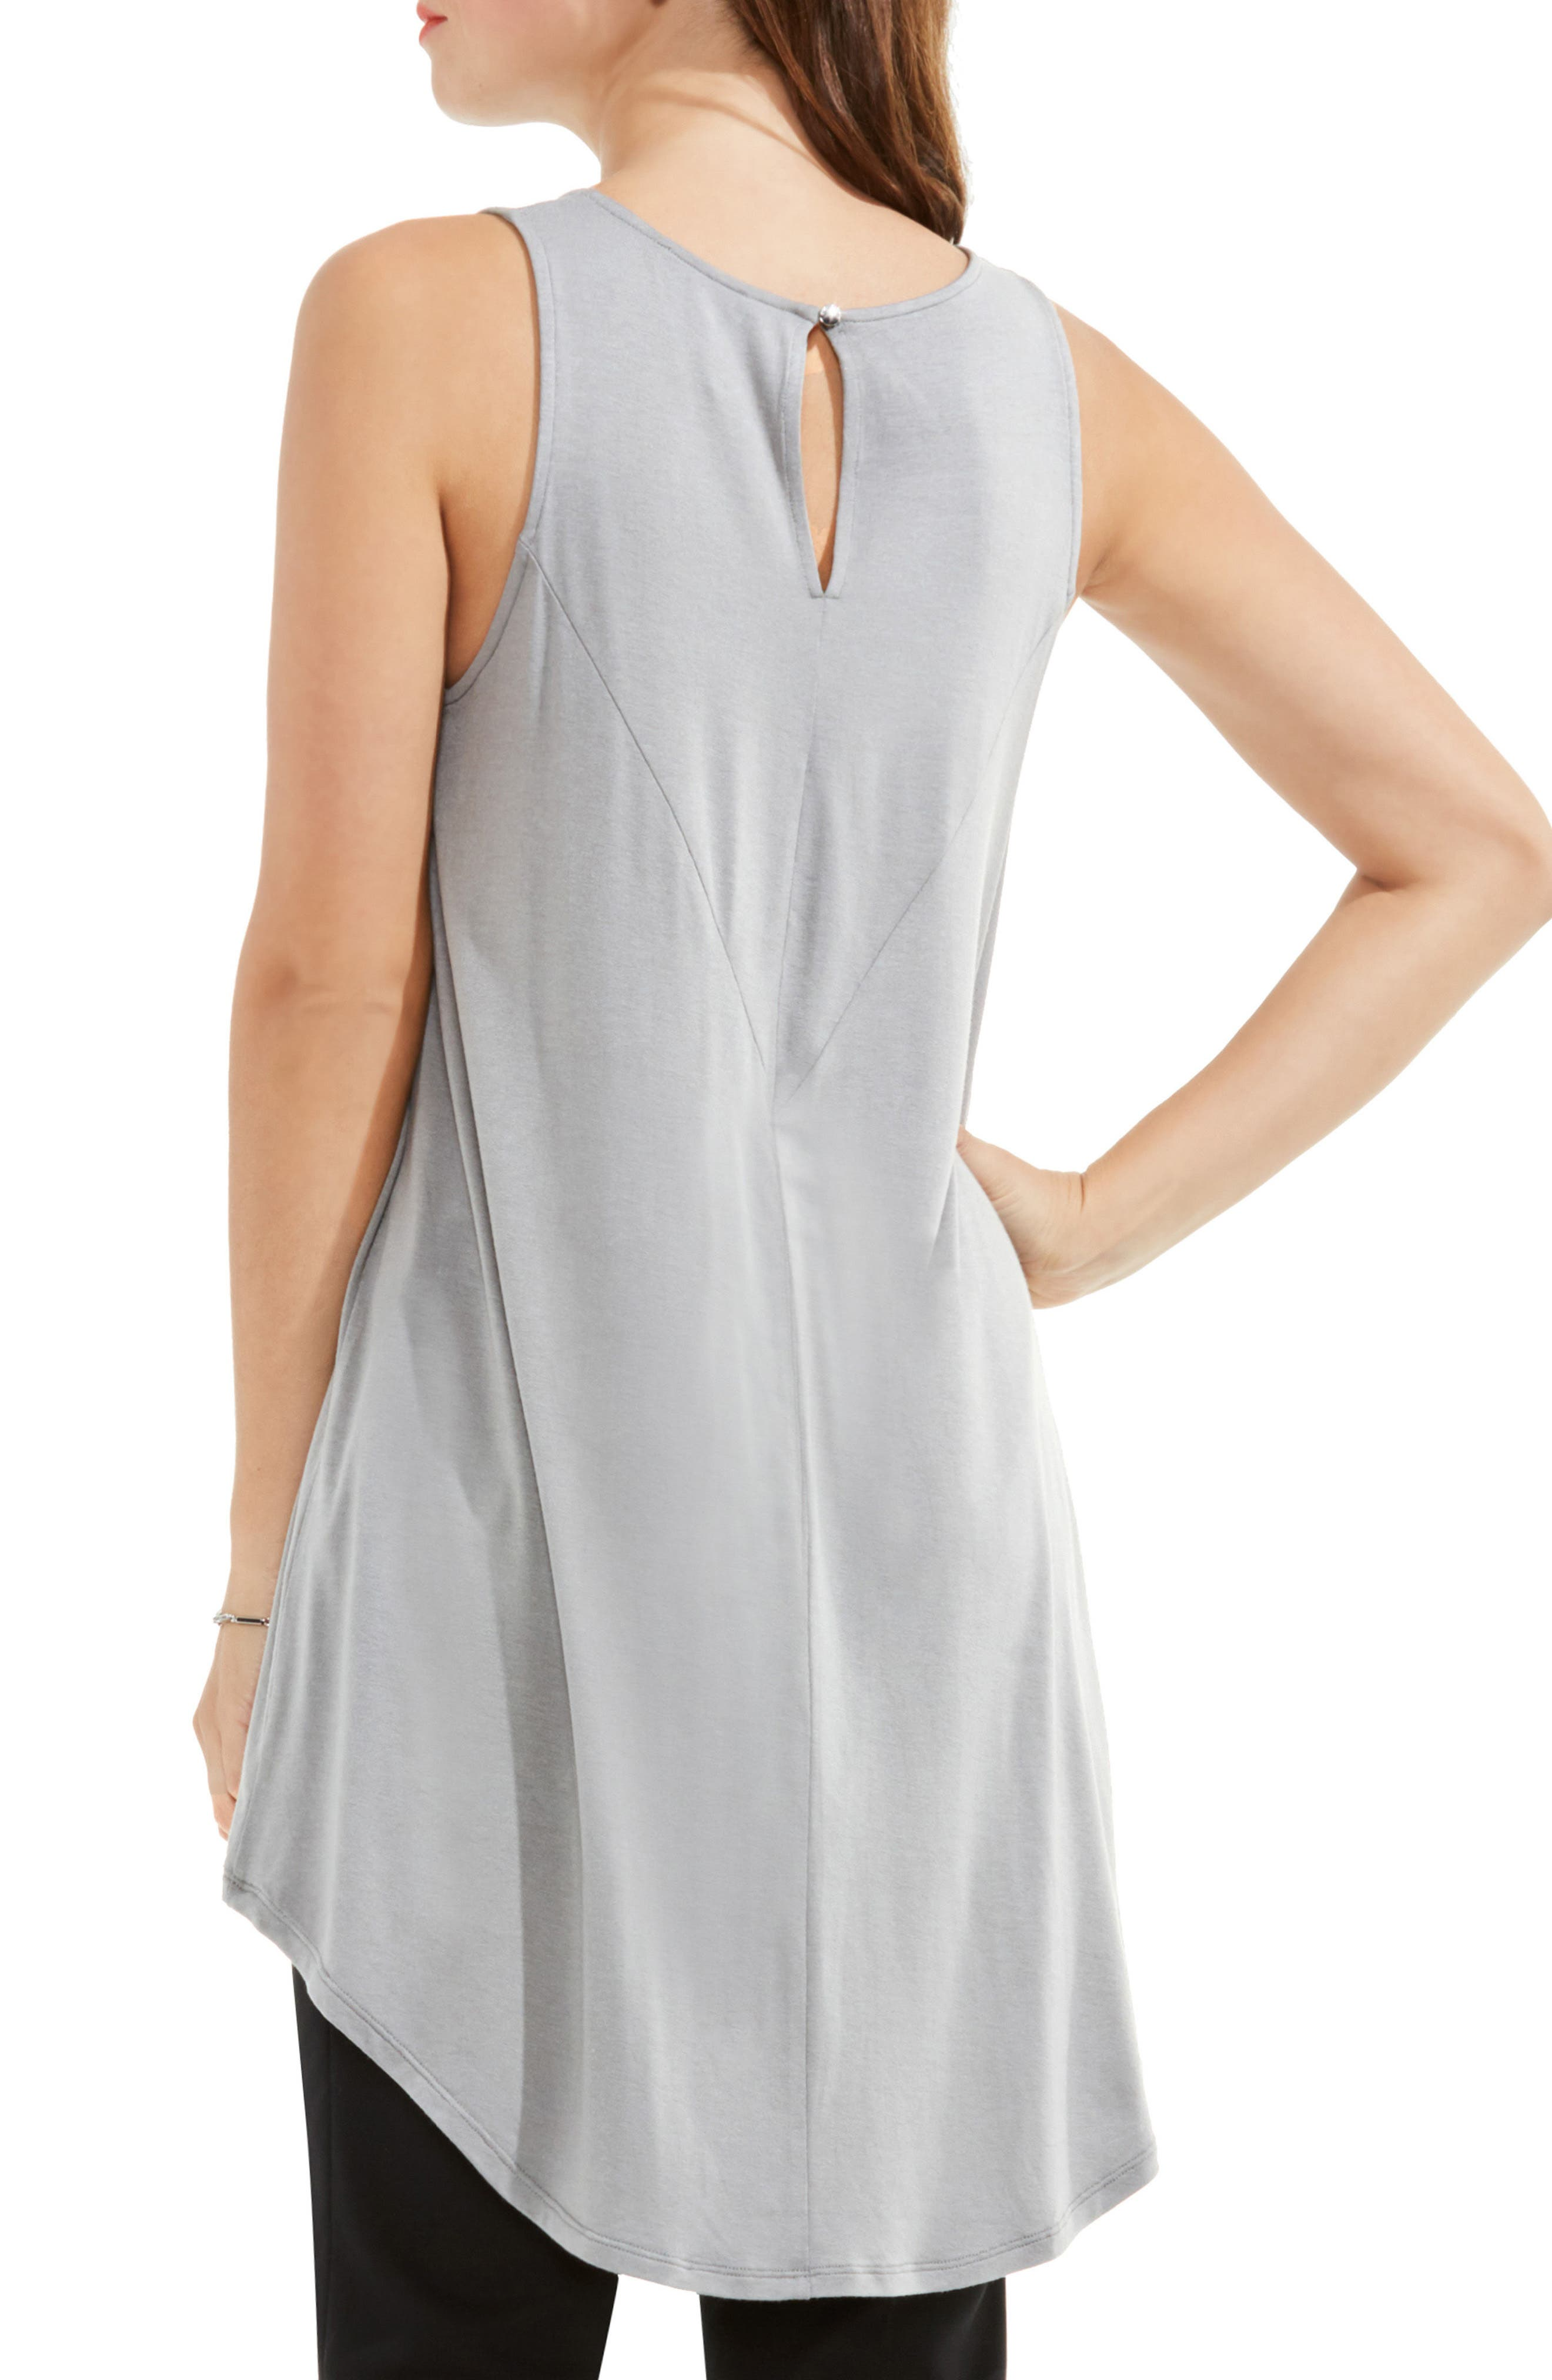 Alternate Image 2  - Vince Camuto Sleeveless High/Low Top